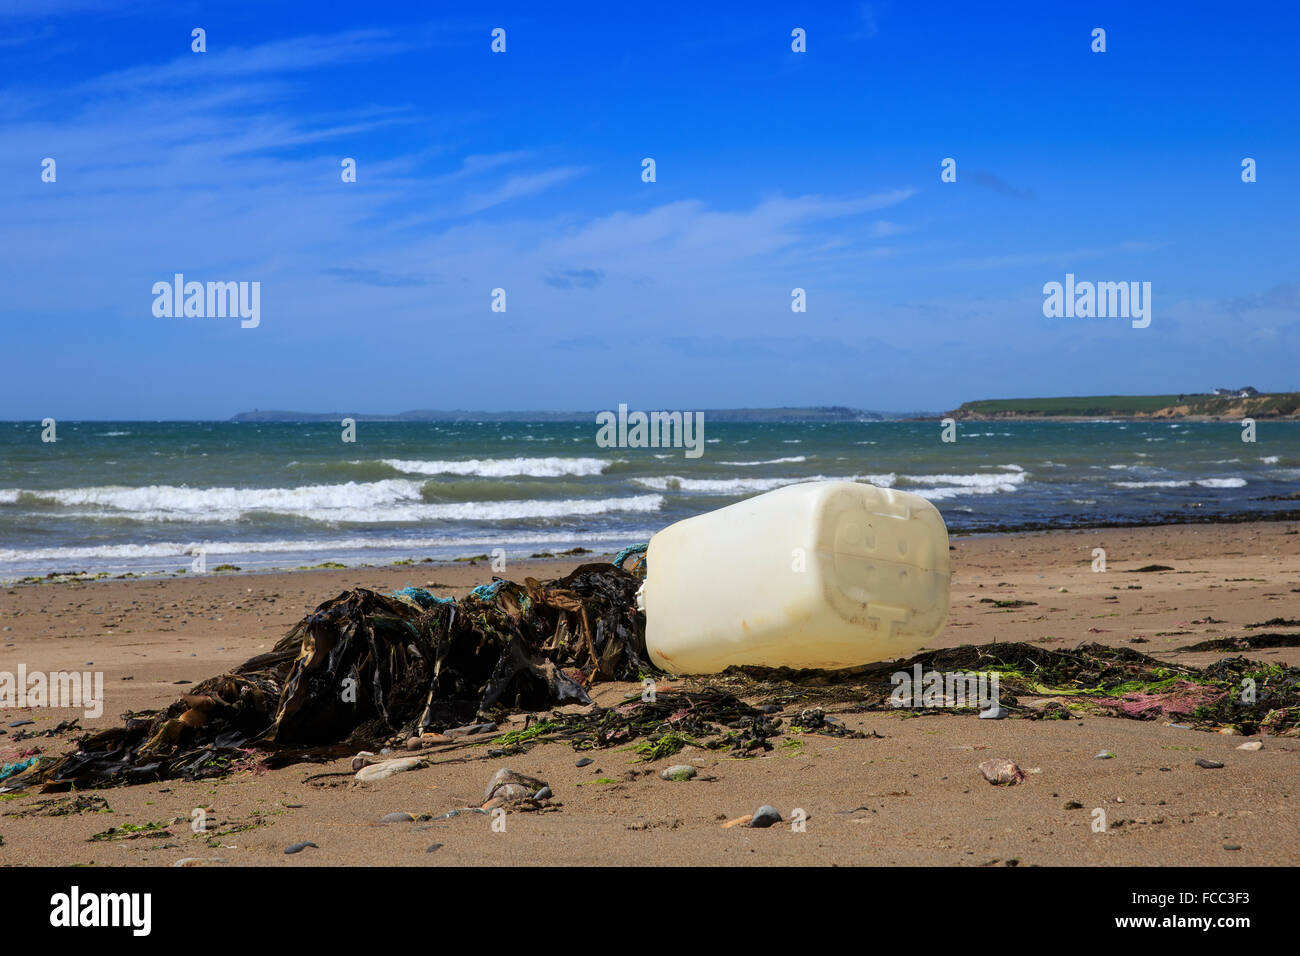 plastic rubbish garbage beach - Stock Image